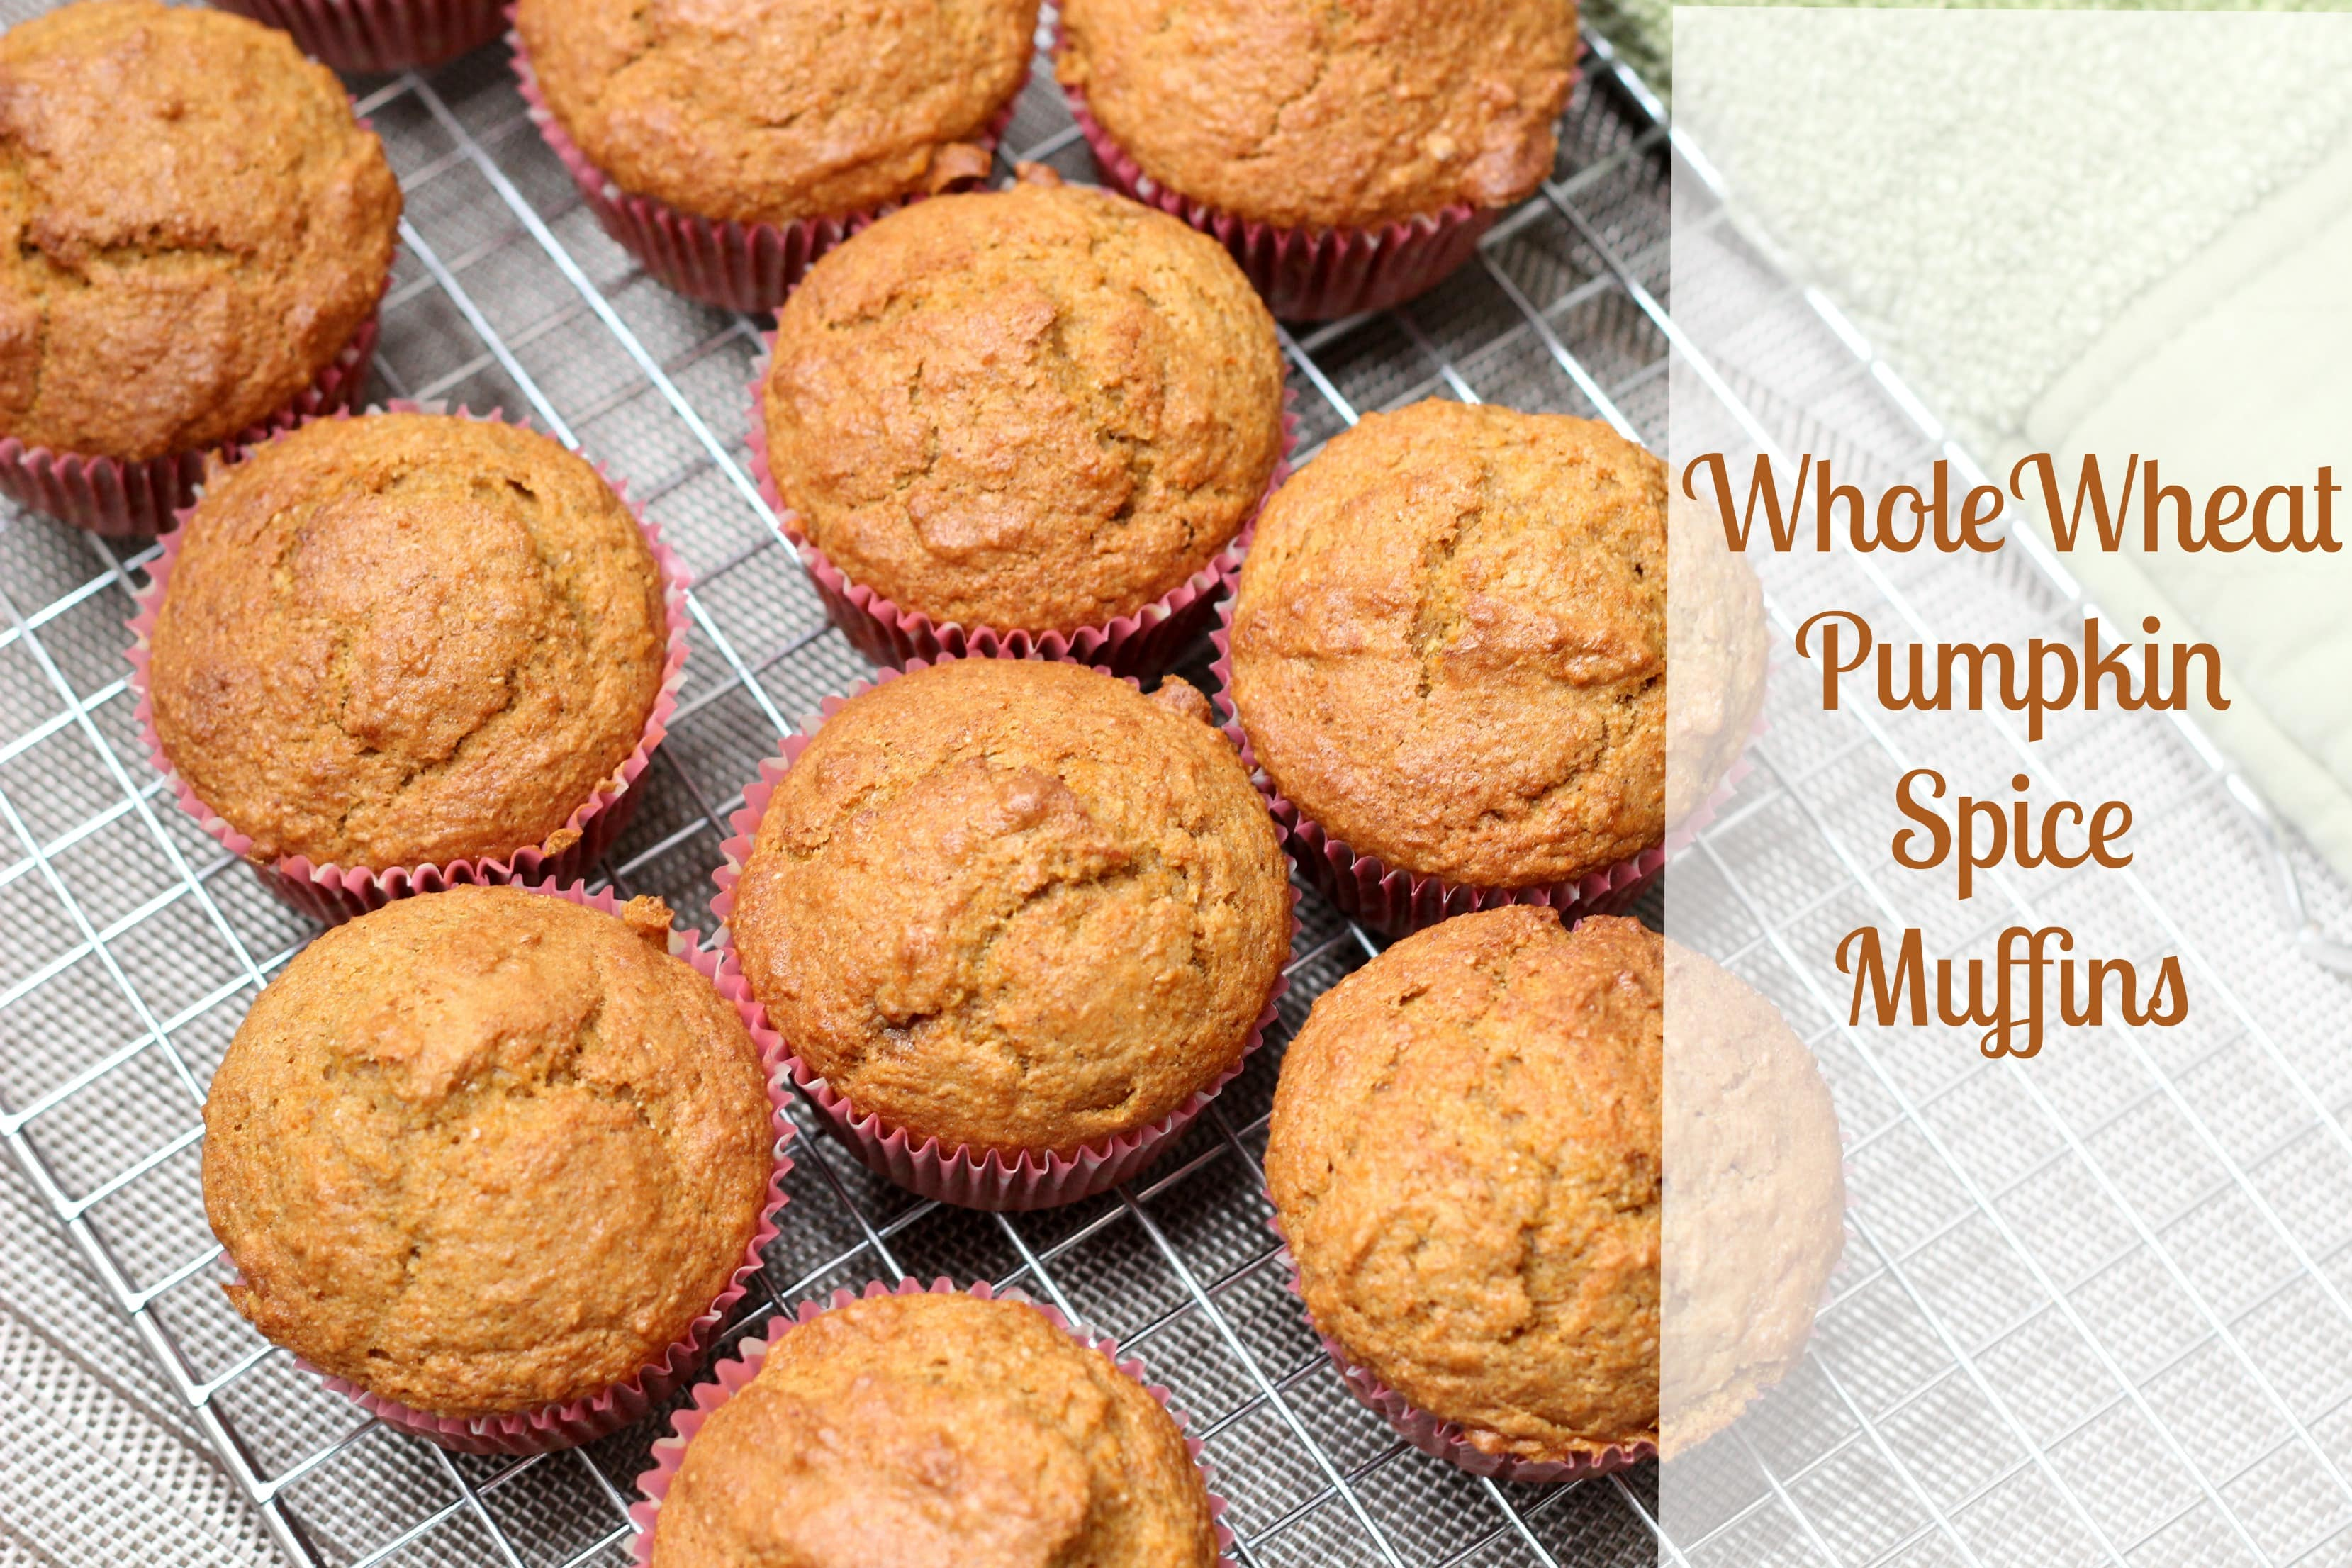 Whole Wheat Pumpkin Spice Latte Muffins Recipe — Dishmaps